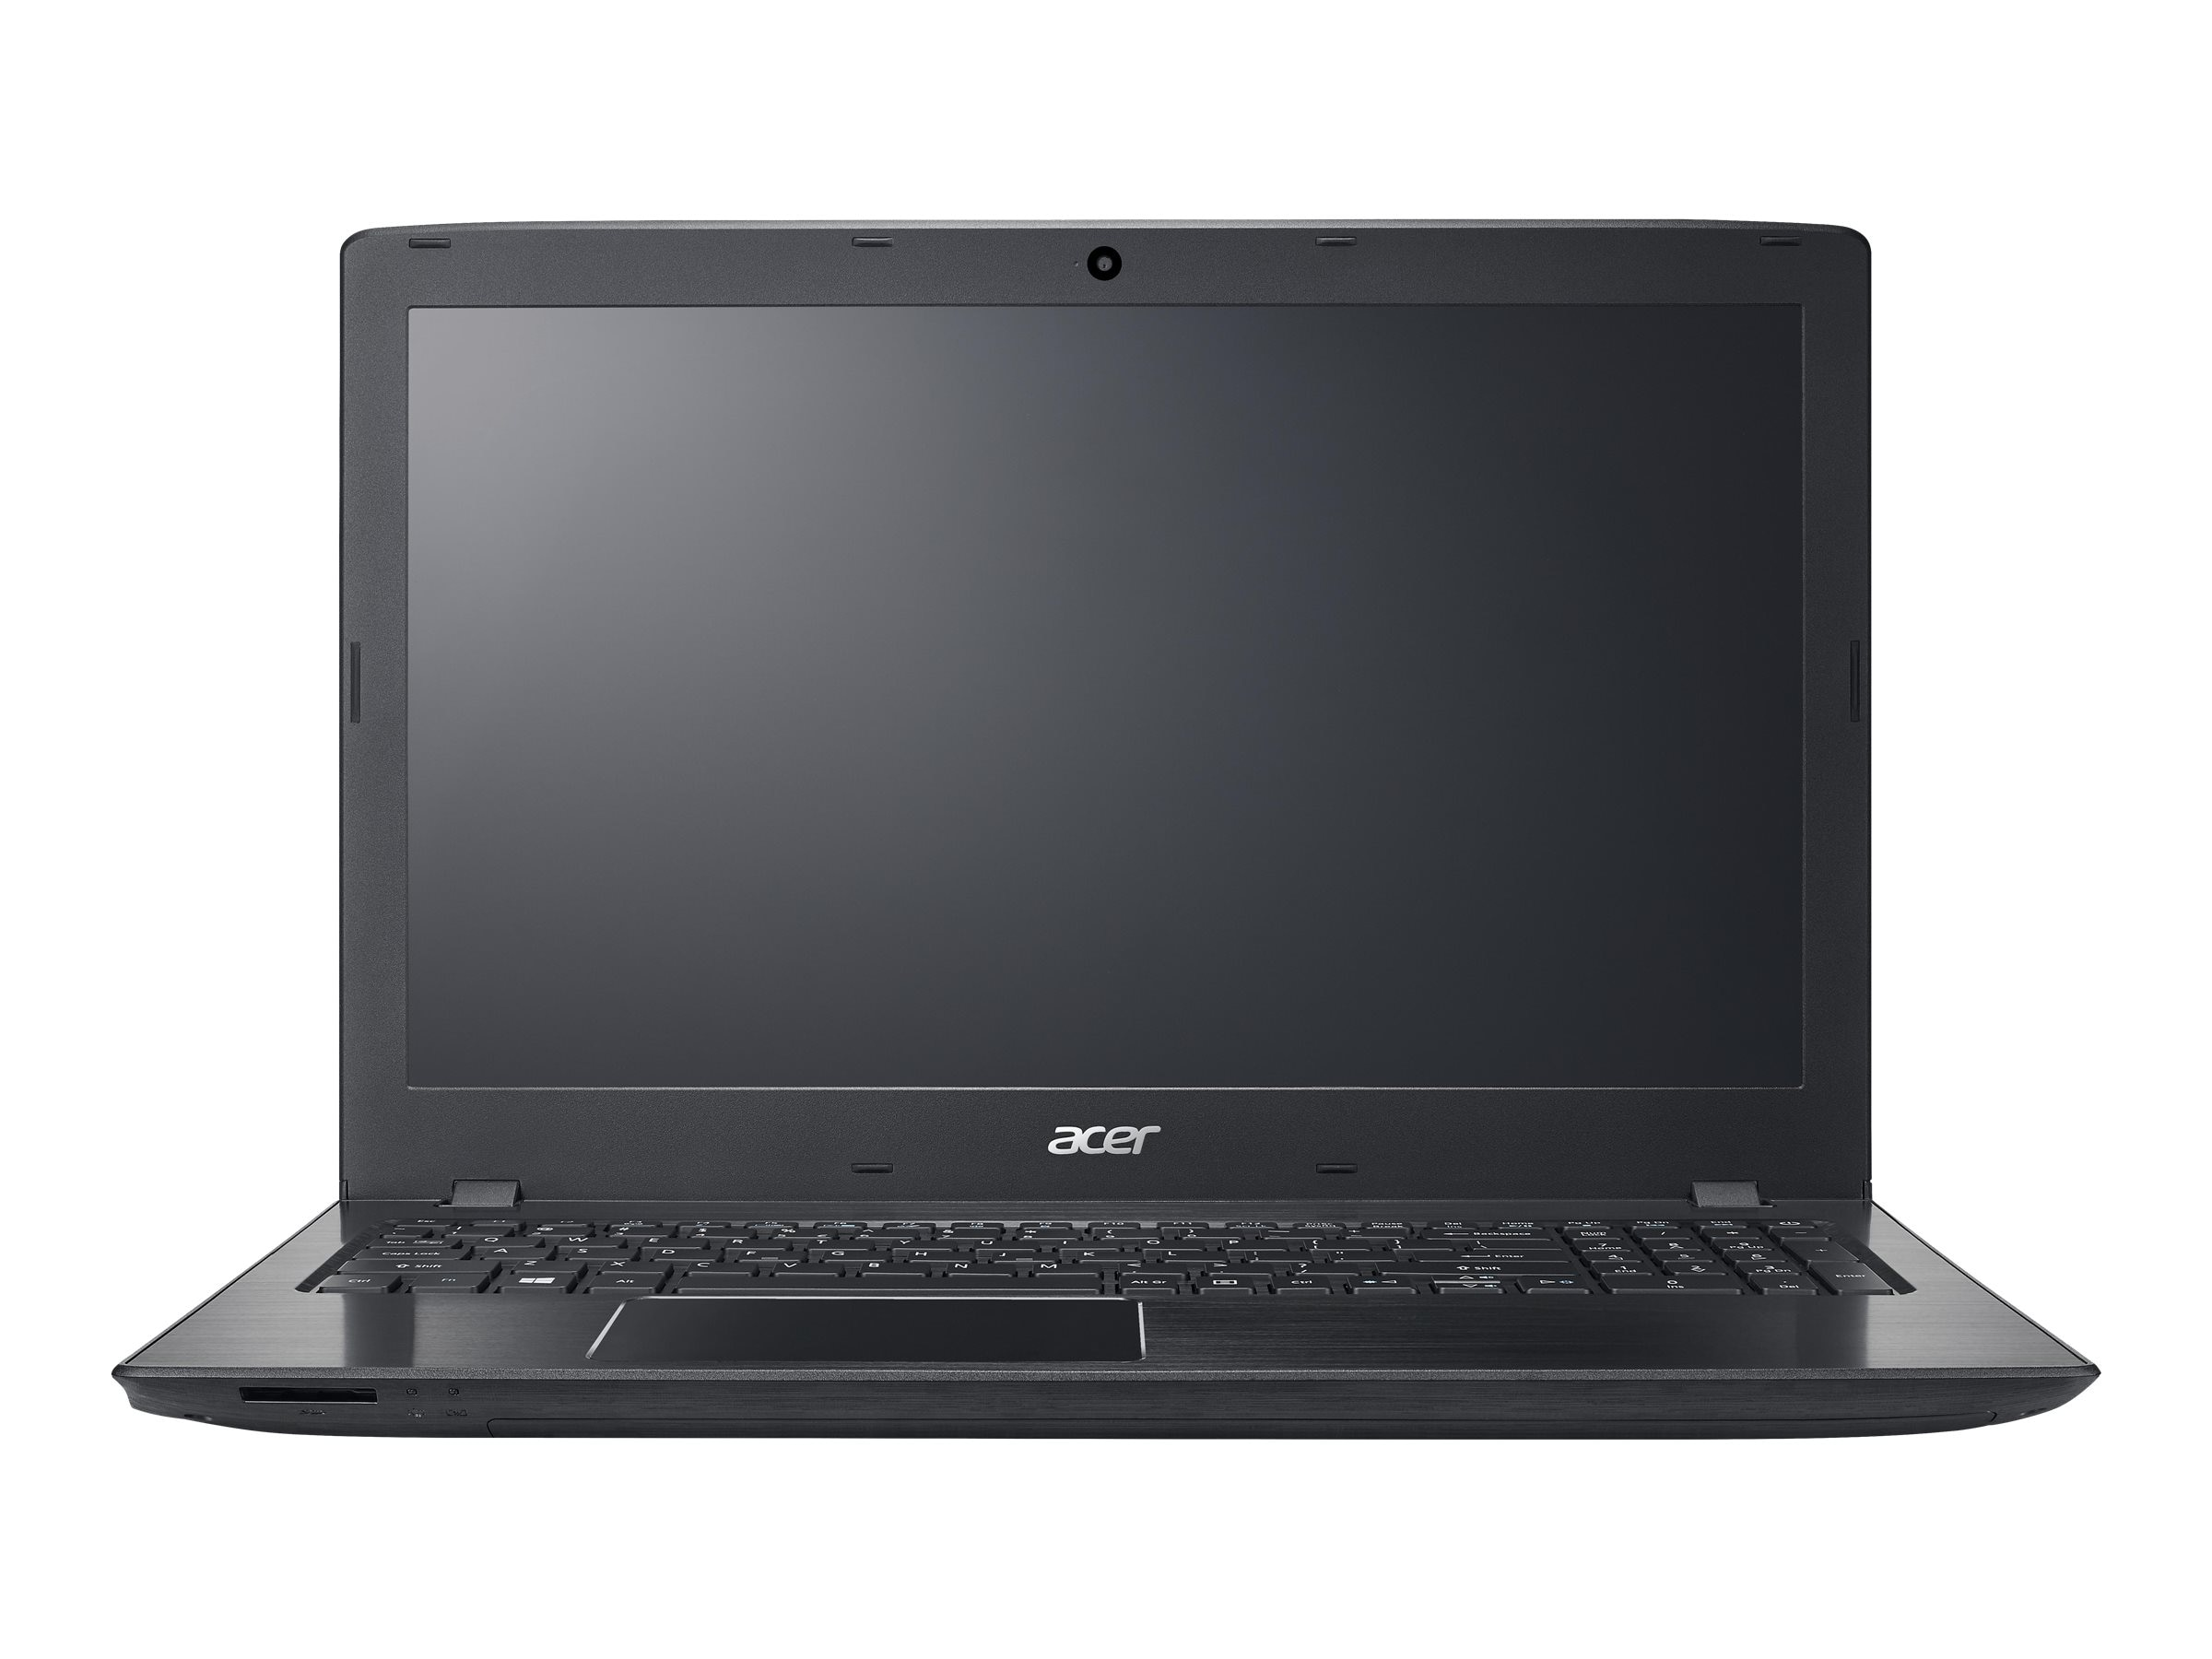 Acer Aspire E5-575T-33CF Core i3-6100U 2.3GHz 4GB 1TB ac BT WC 6C 15.6 HD MT W10H64, NX.GGQAA.002